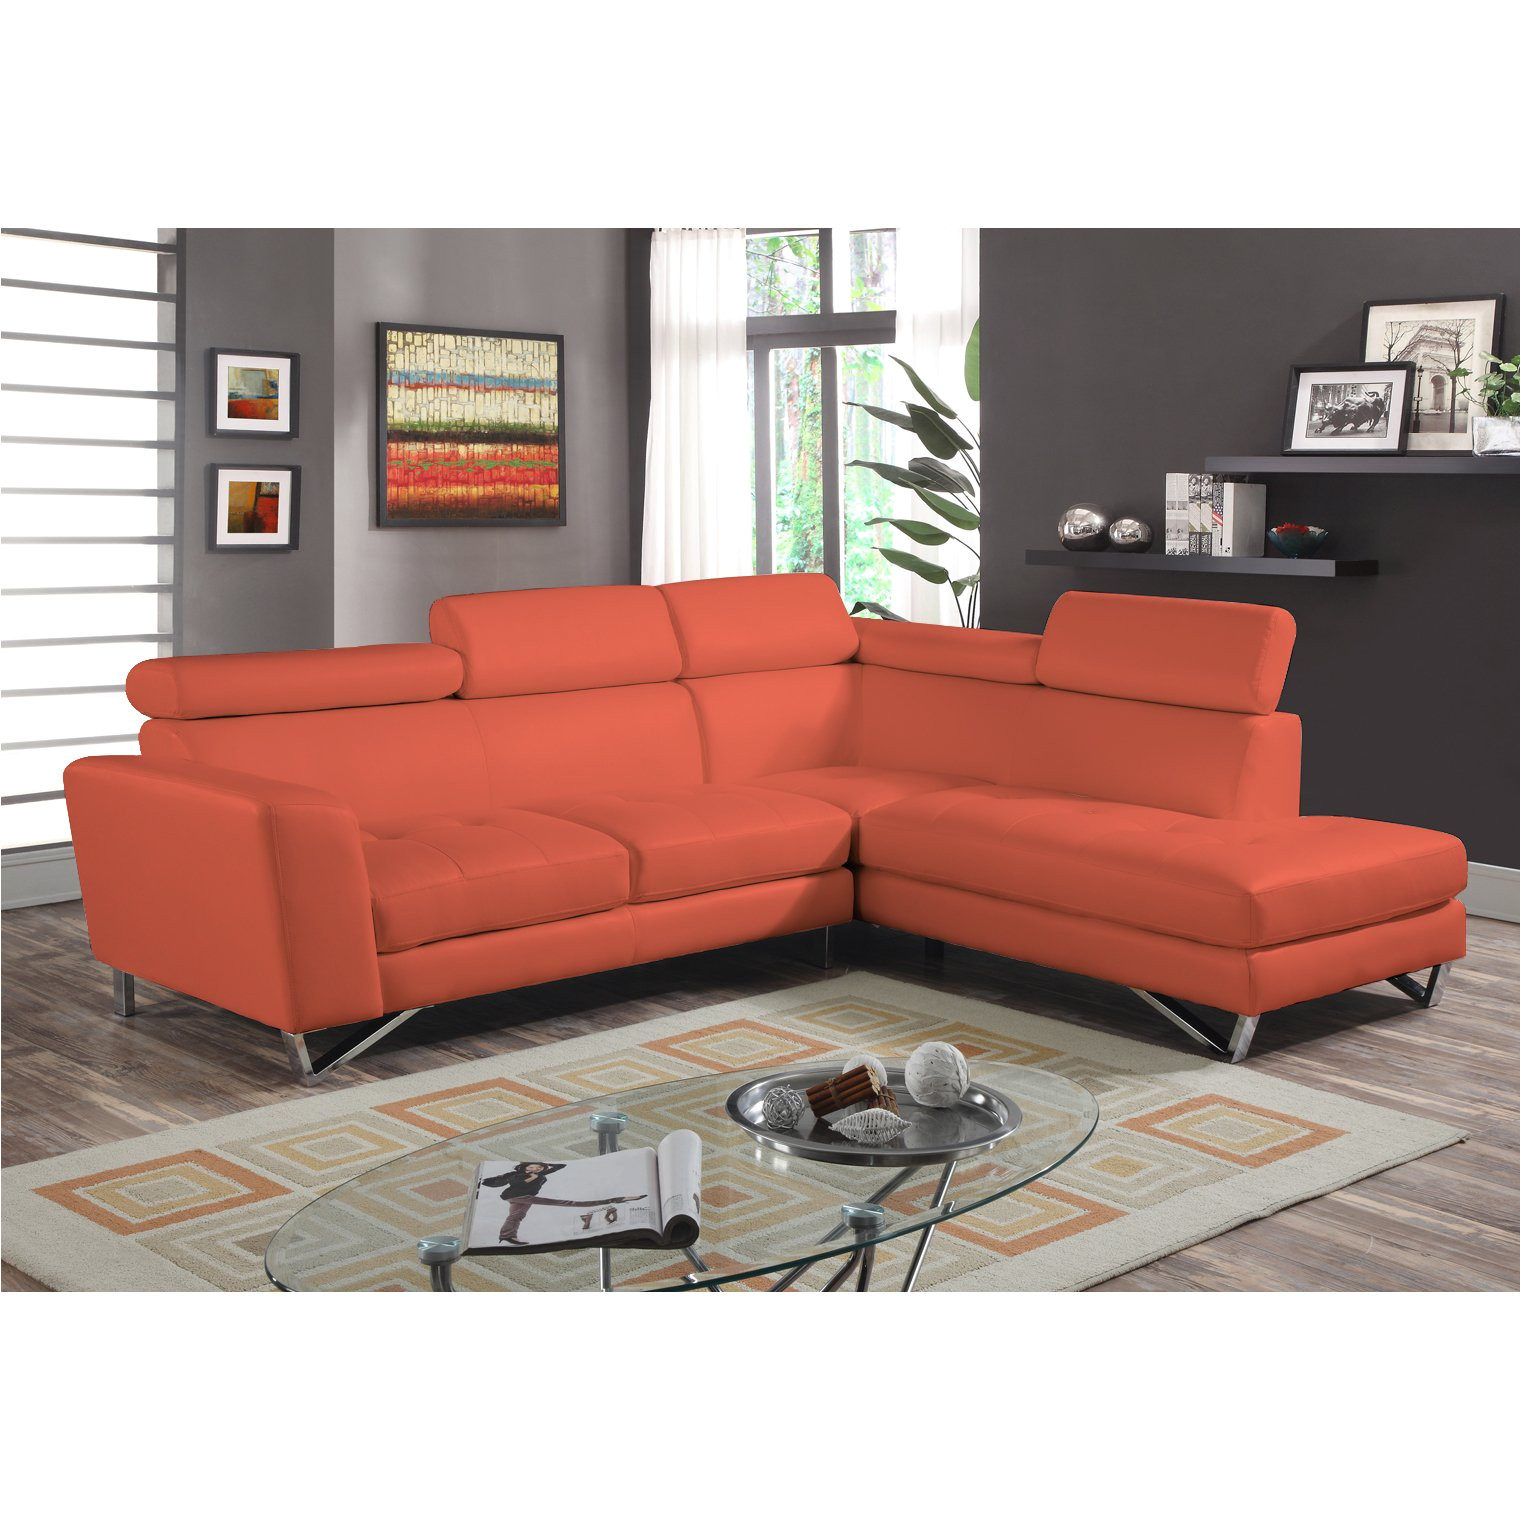 shop 2pc sectional orange microfiber free shipping today overstock com 9969937